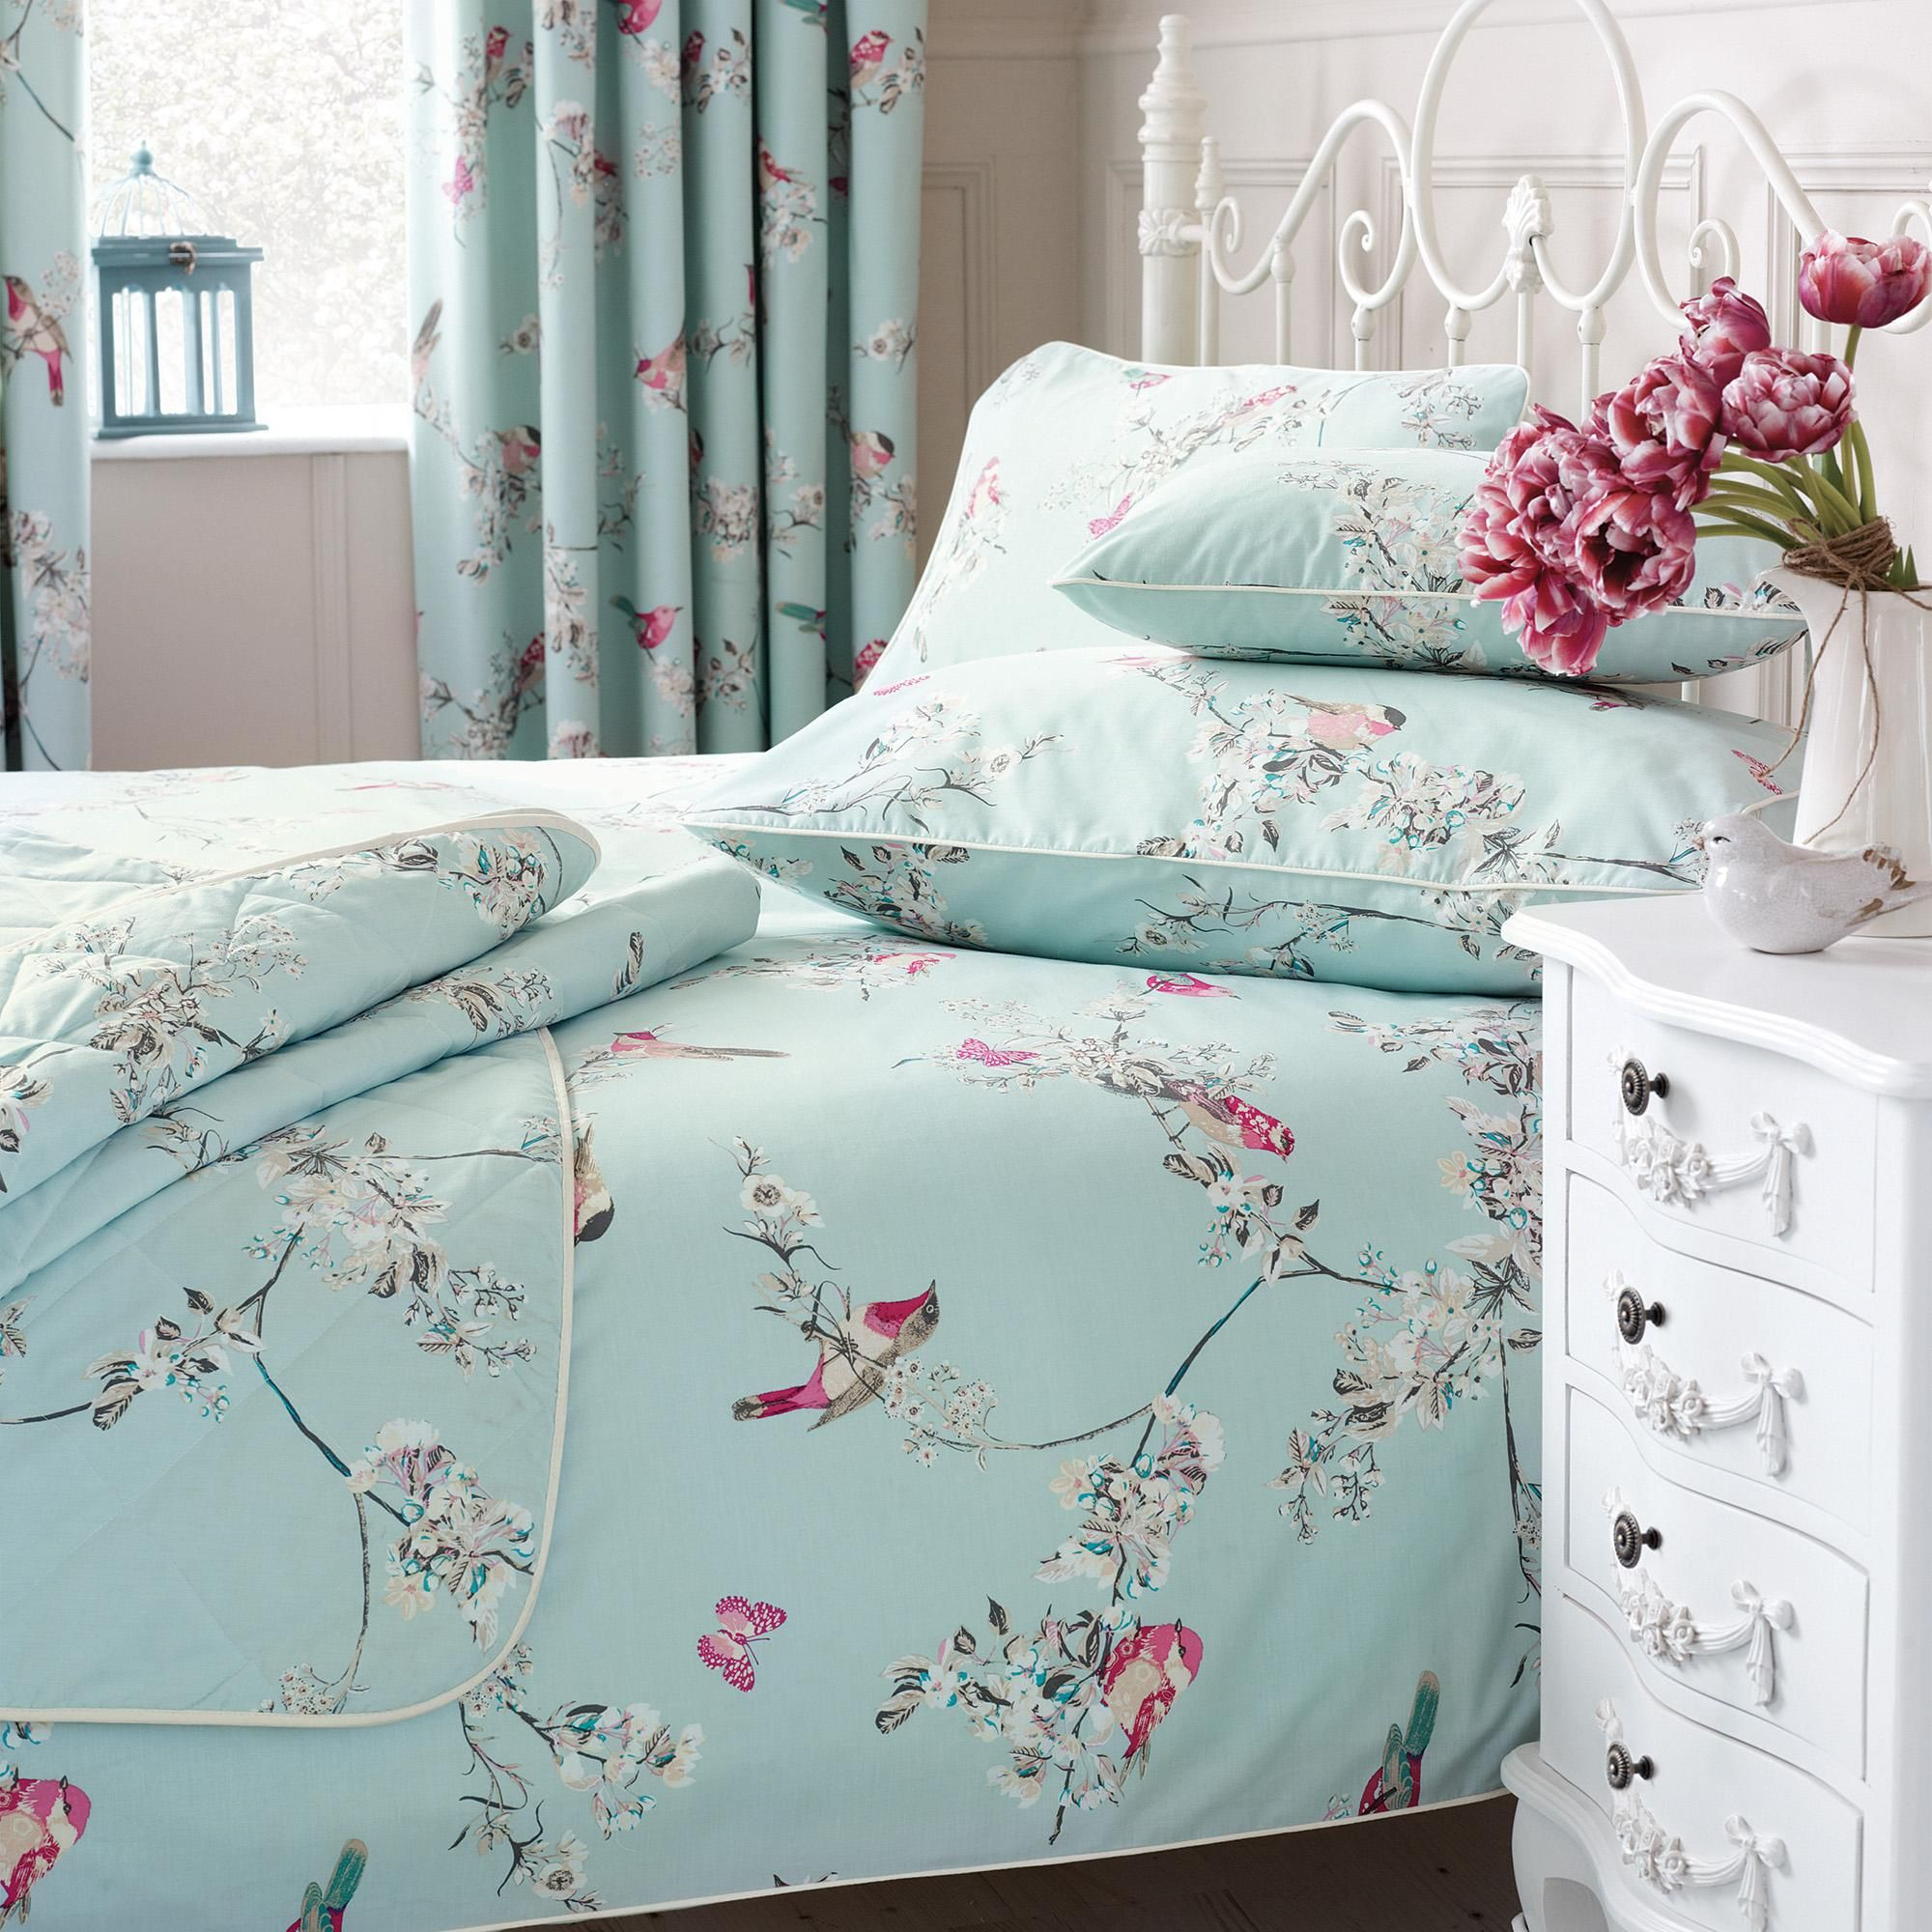 Bedding jardin collection bedding collections bed amp bath macy s - Bedding Sets Matching Bedding Quilt Sets Dunelm